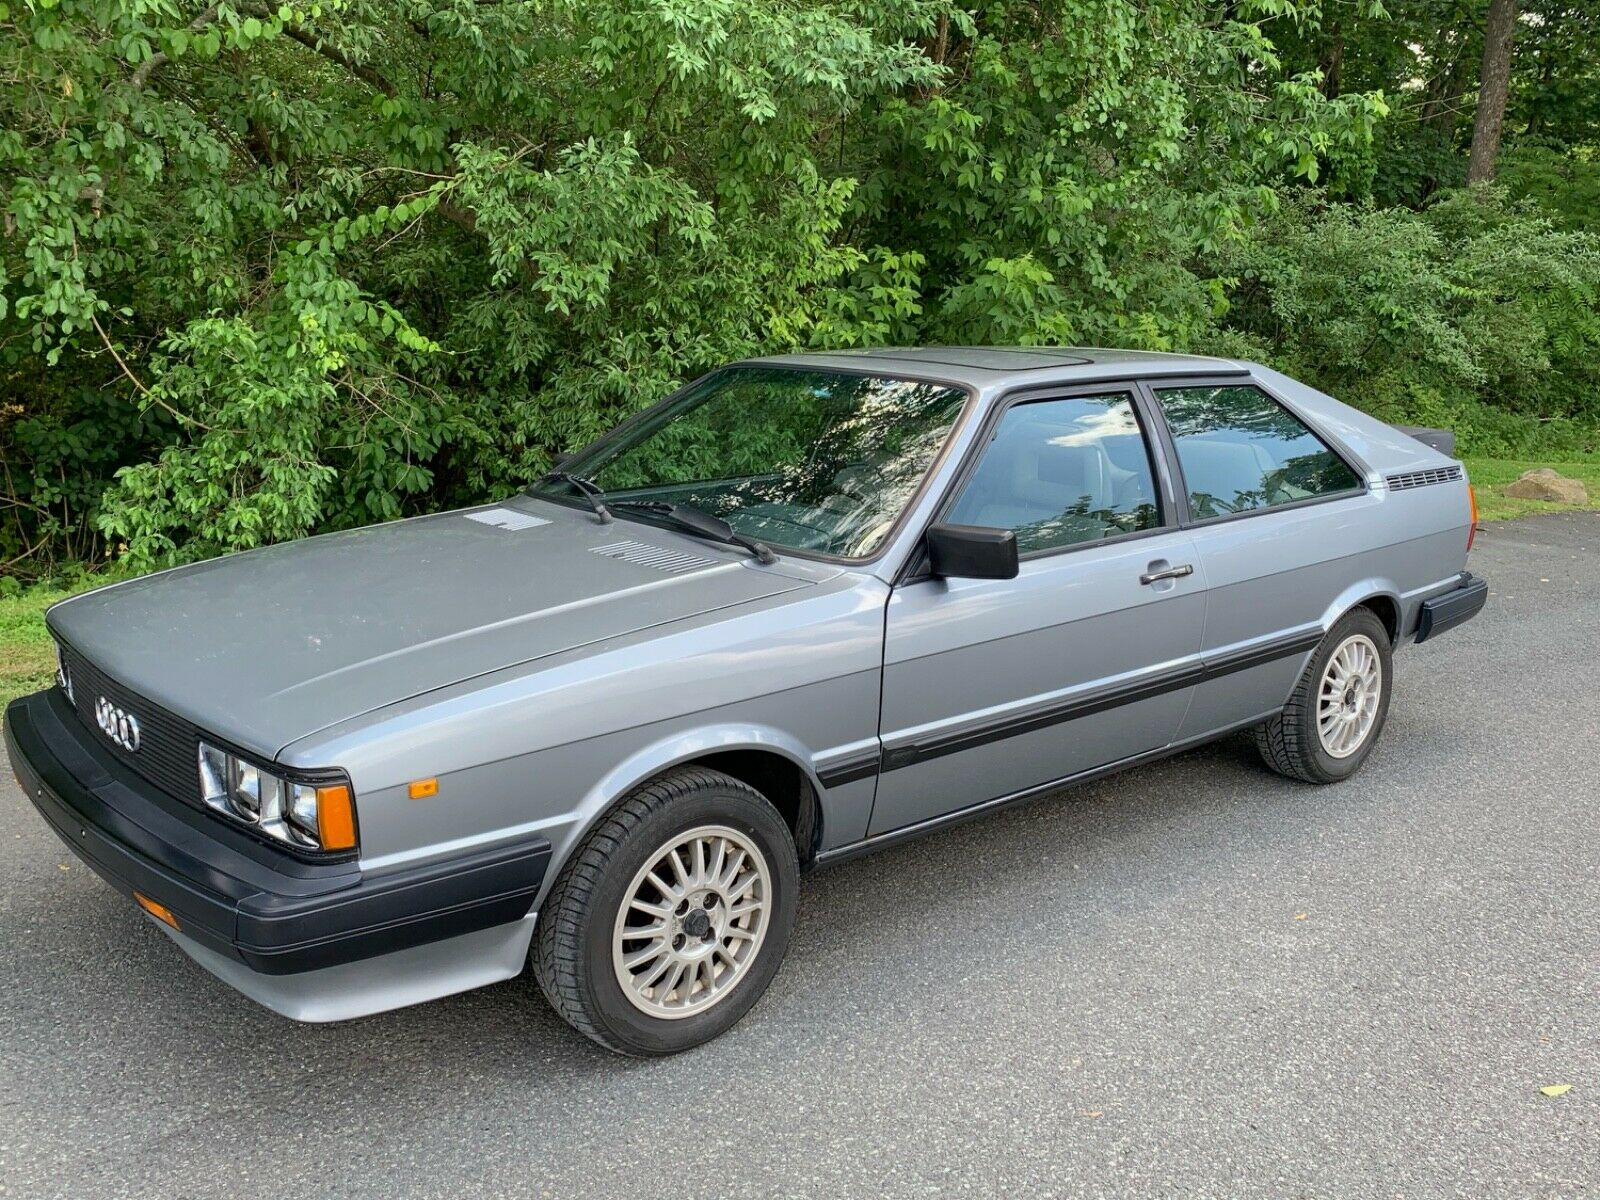 1984 Audi Coupe GT - German Cars For Sale Blog